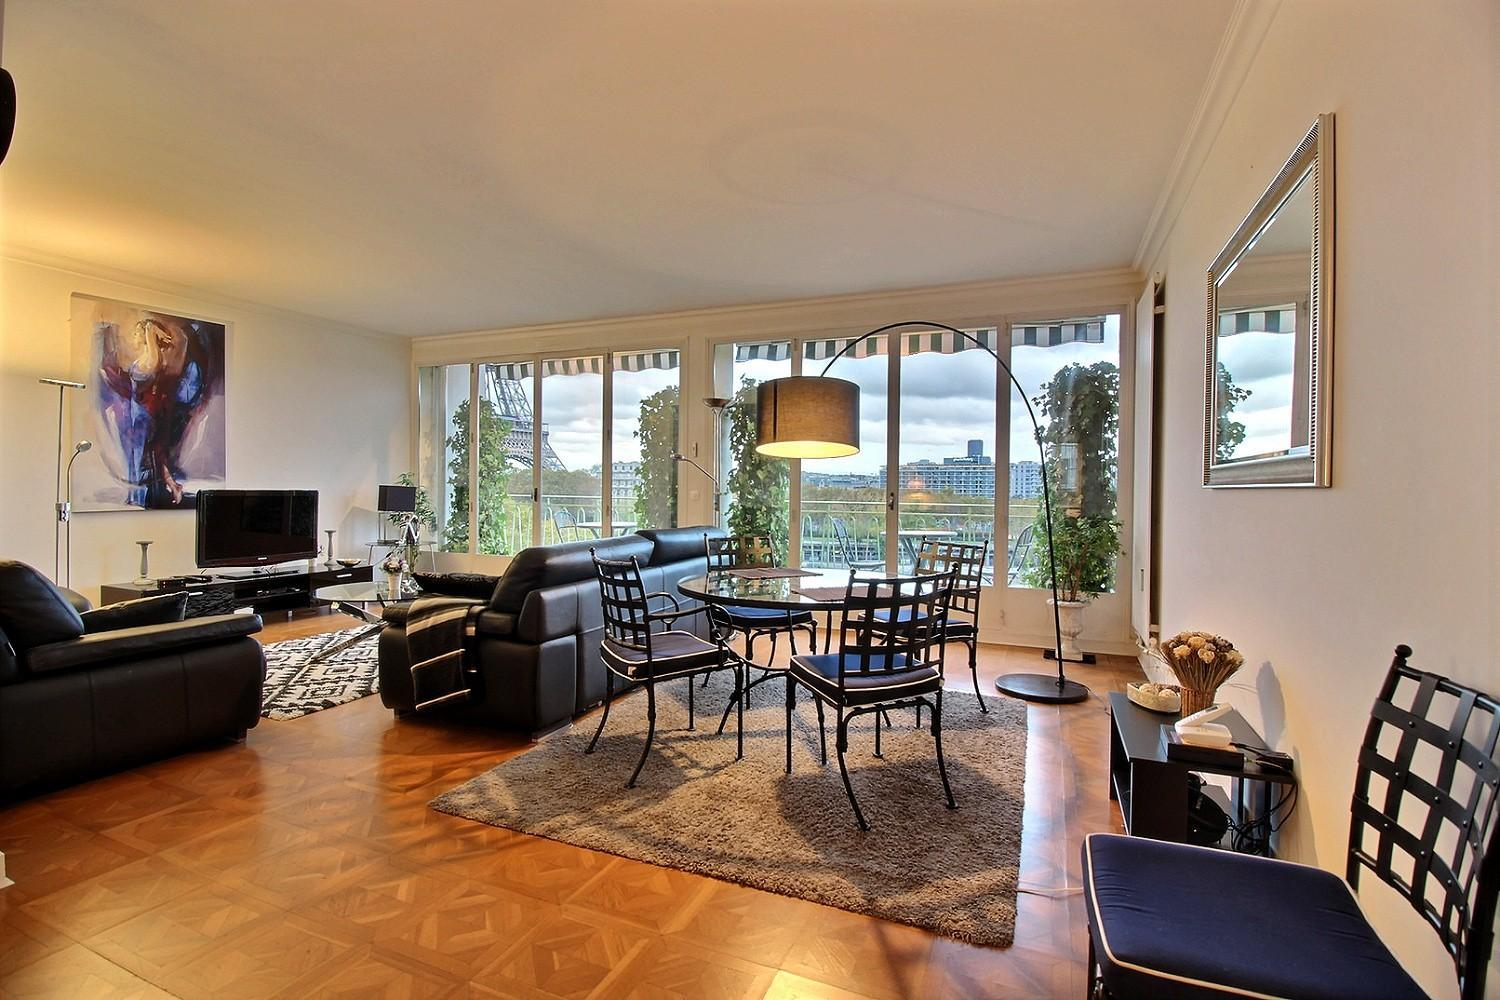 216427 - 2 bedroom with terrace in 16th